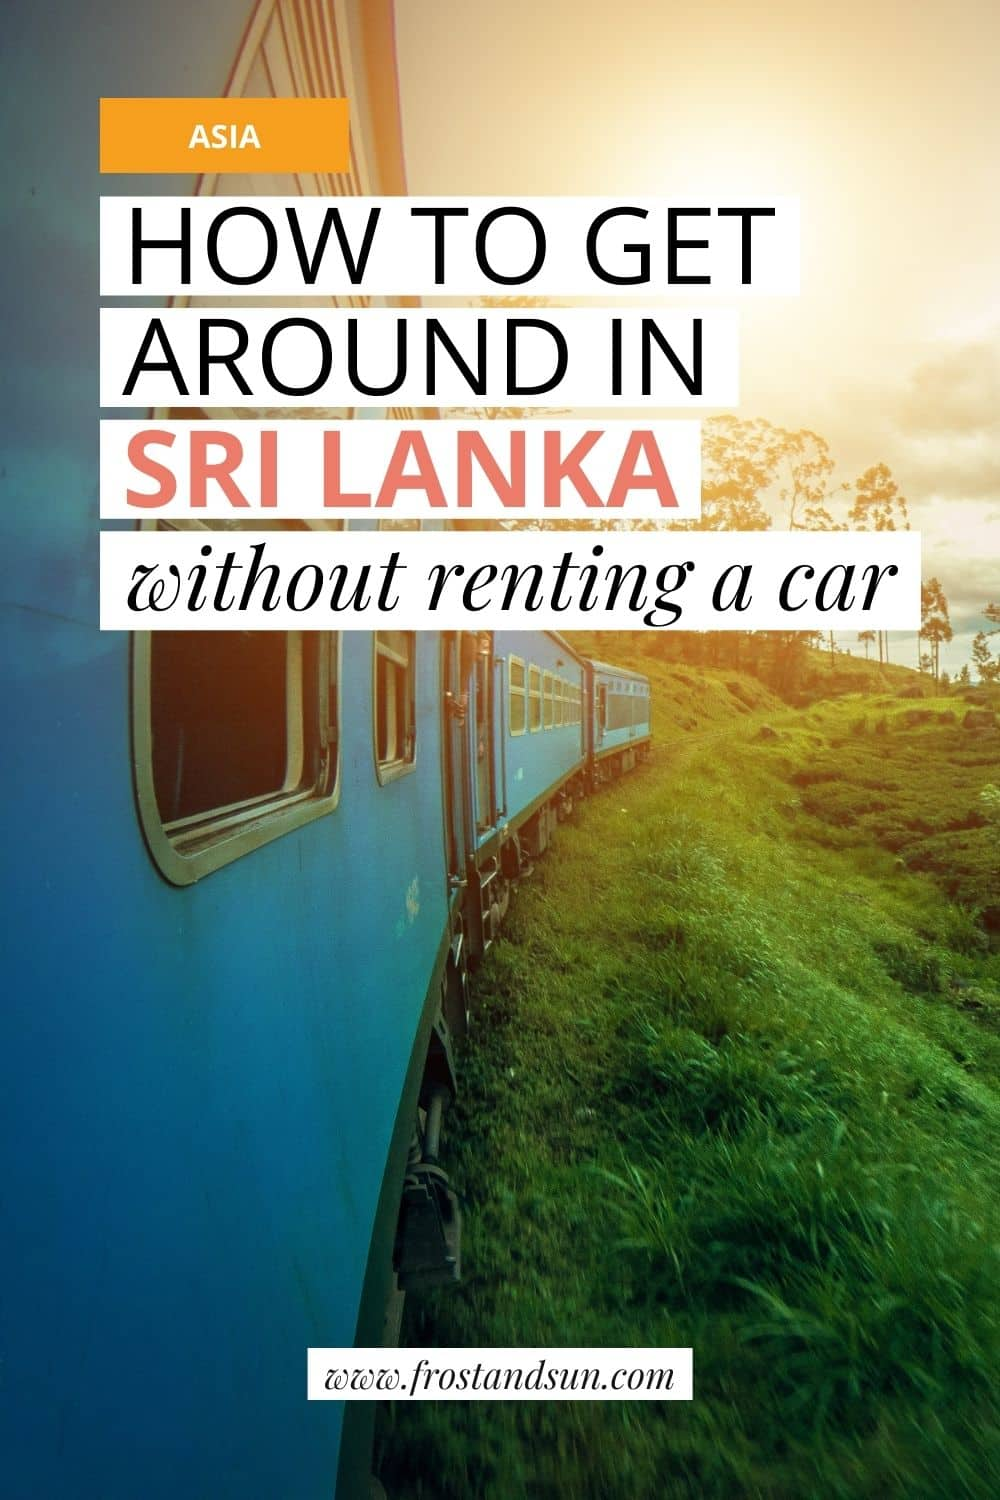 Transportation in Sri Lanka Without Renting a Car